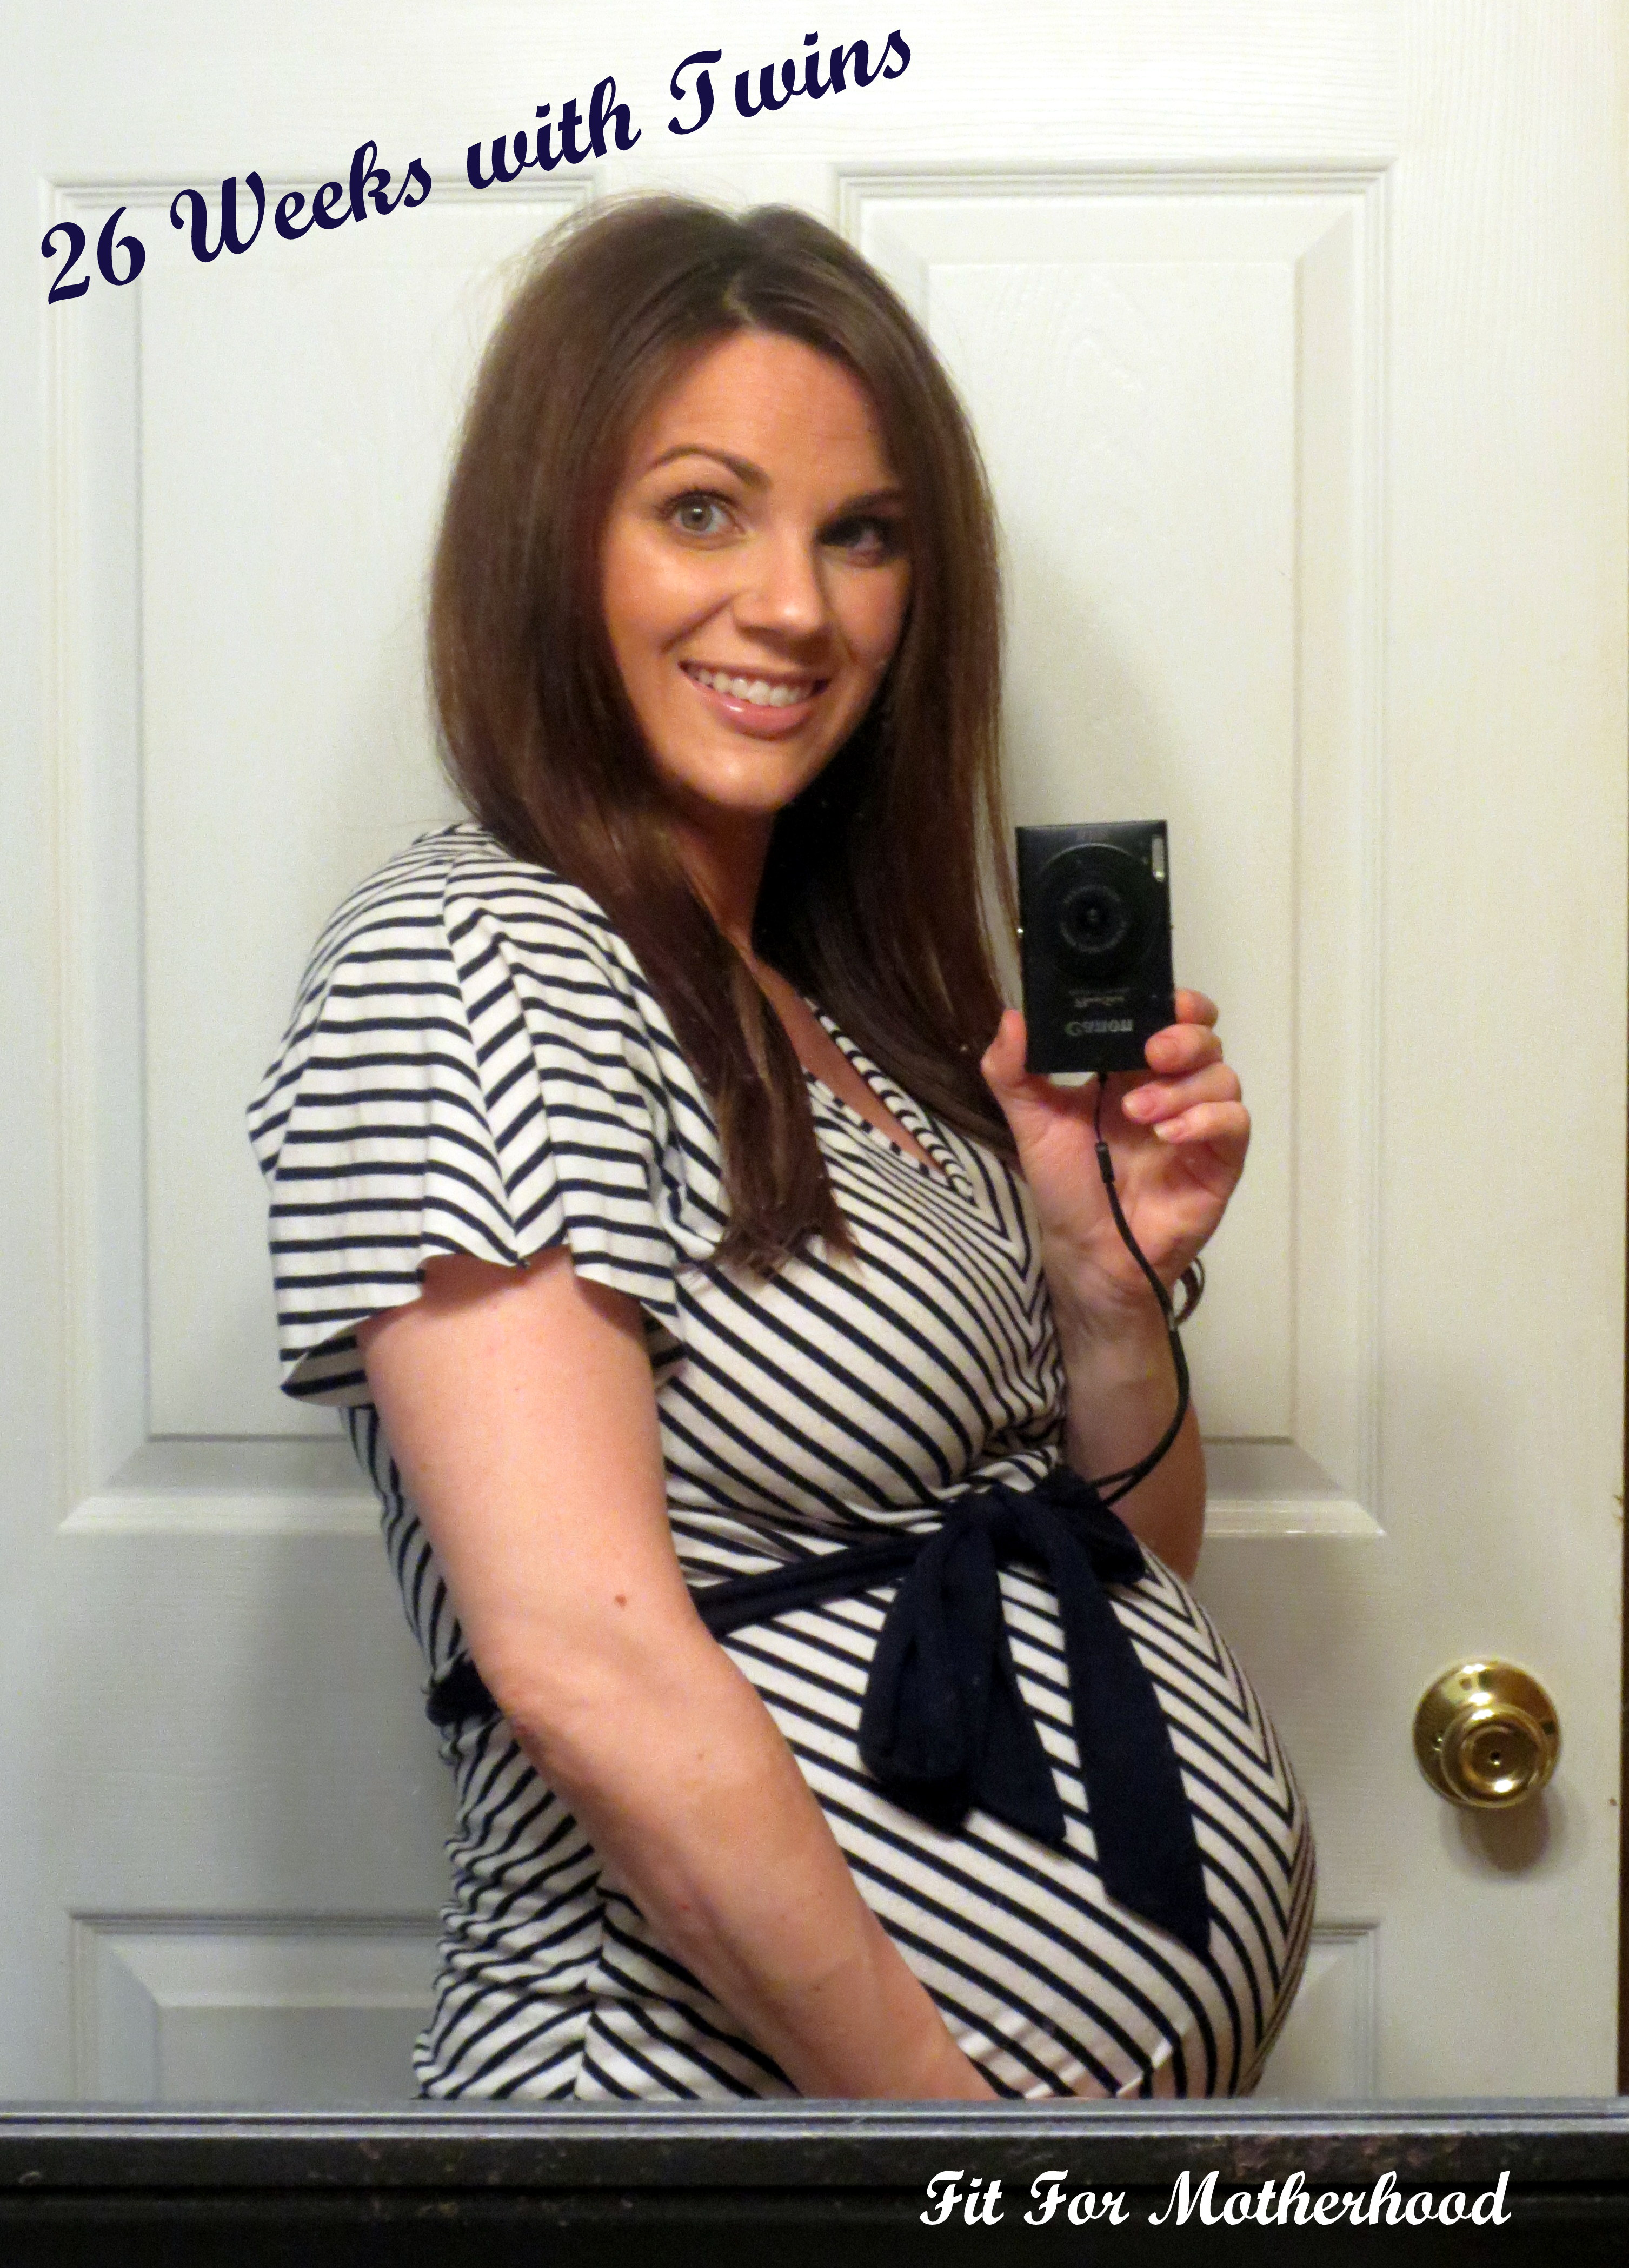 26 Weeks Pregnant with Twins